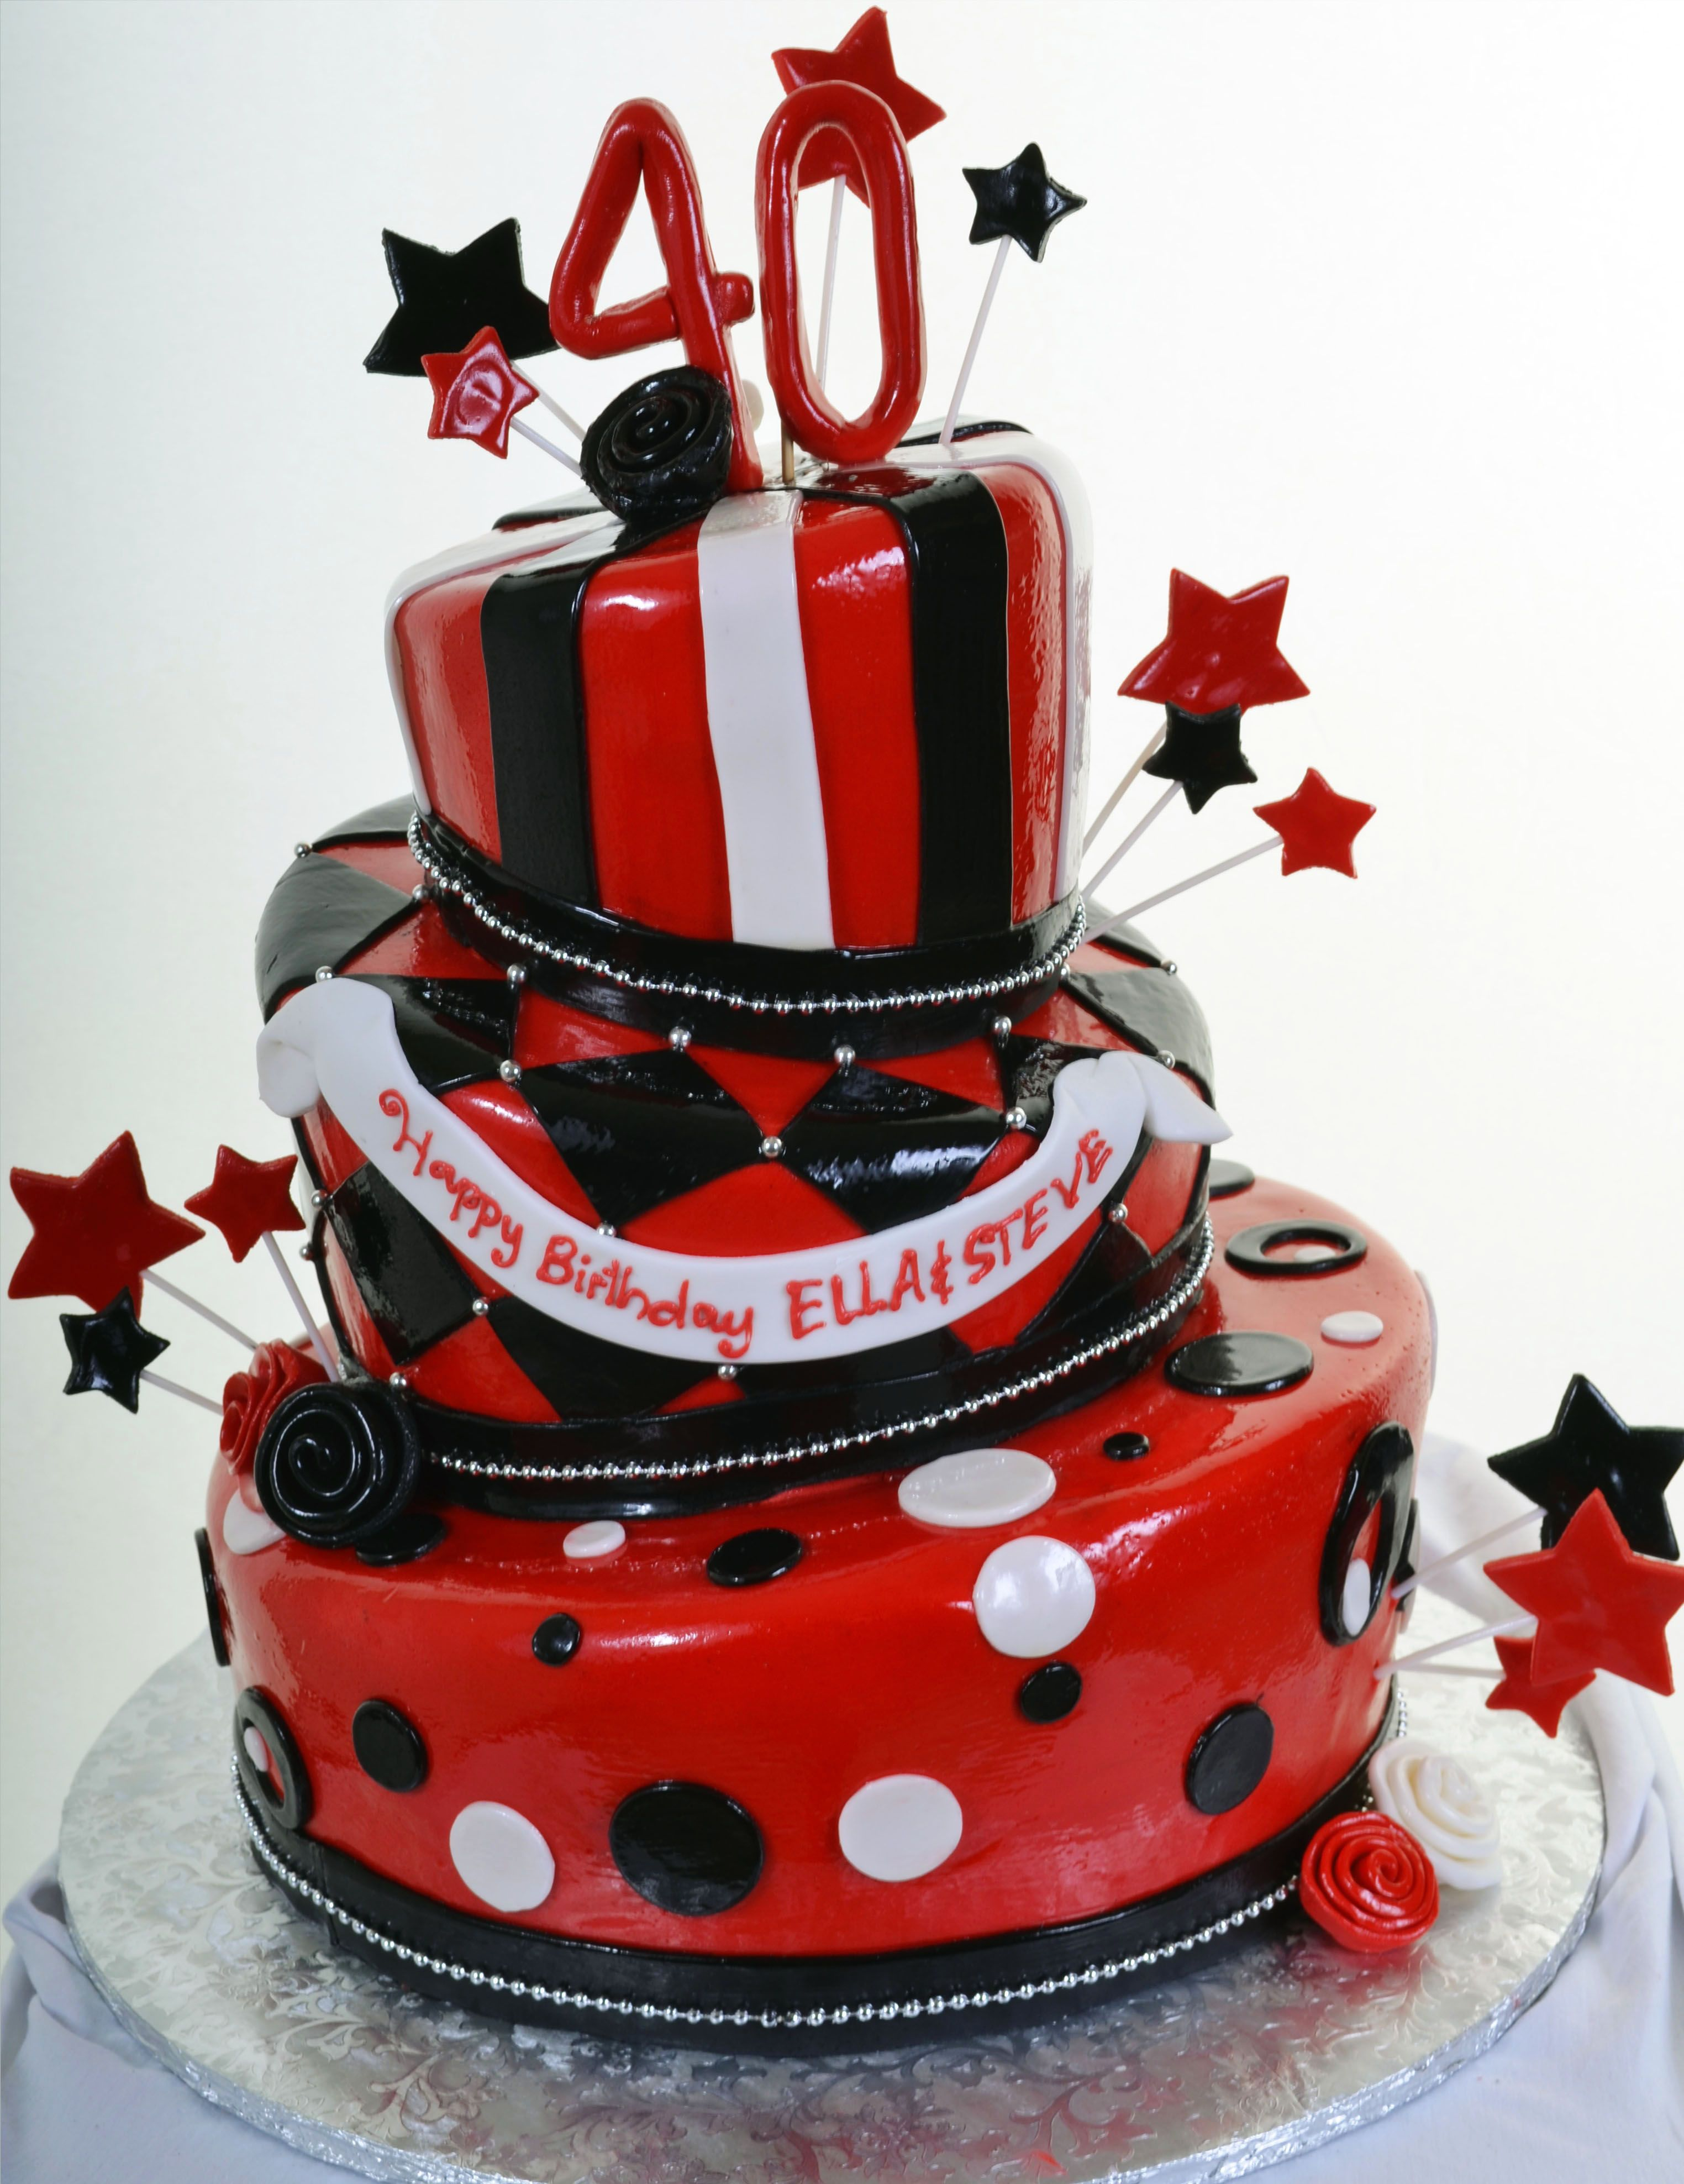 677 bursting birthday with images red birthday cakes